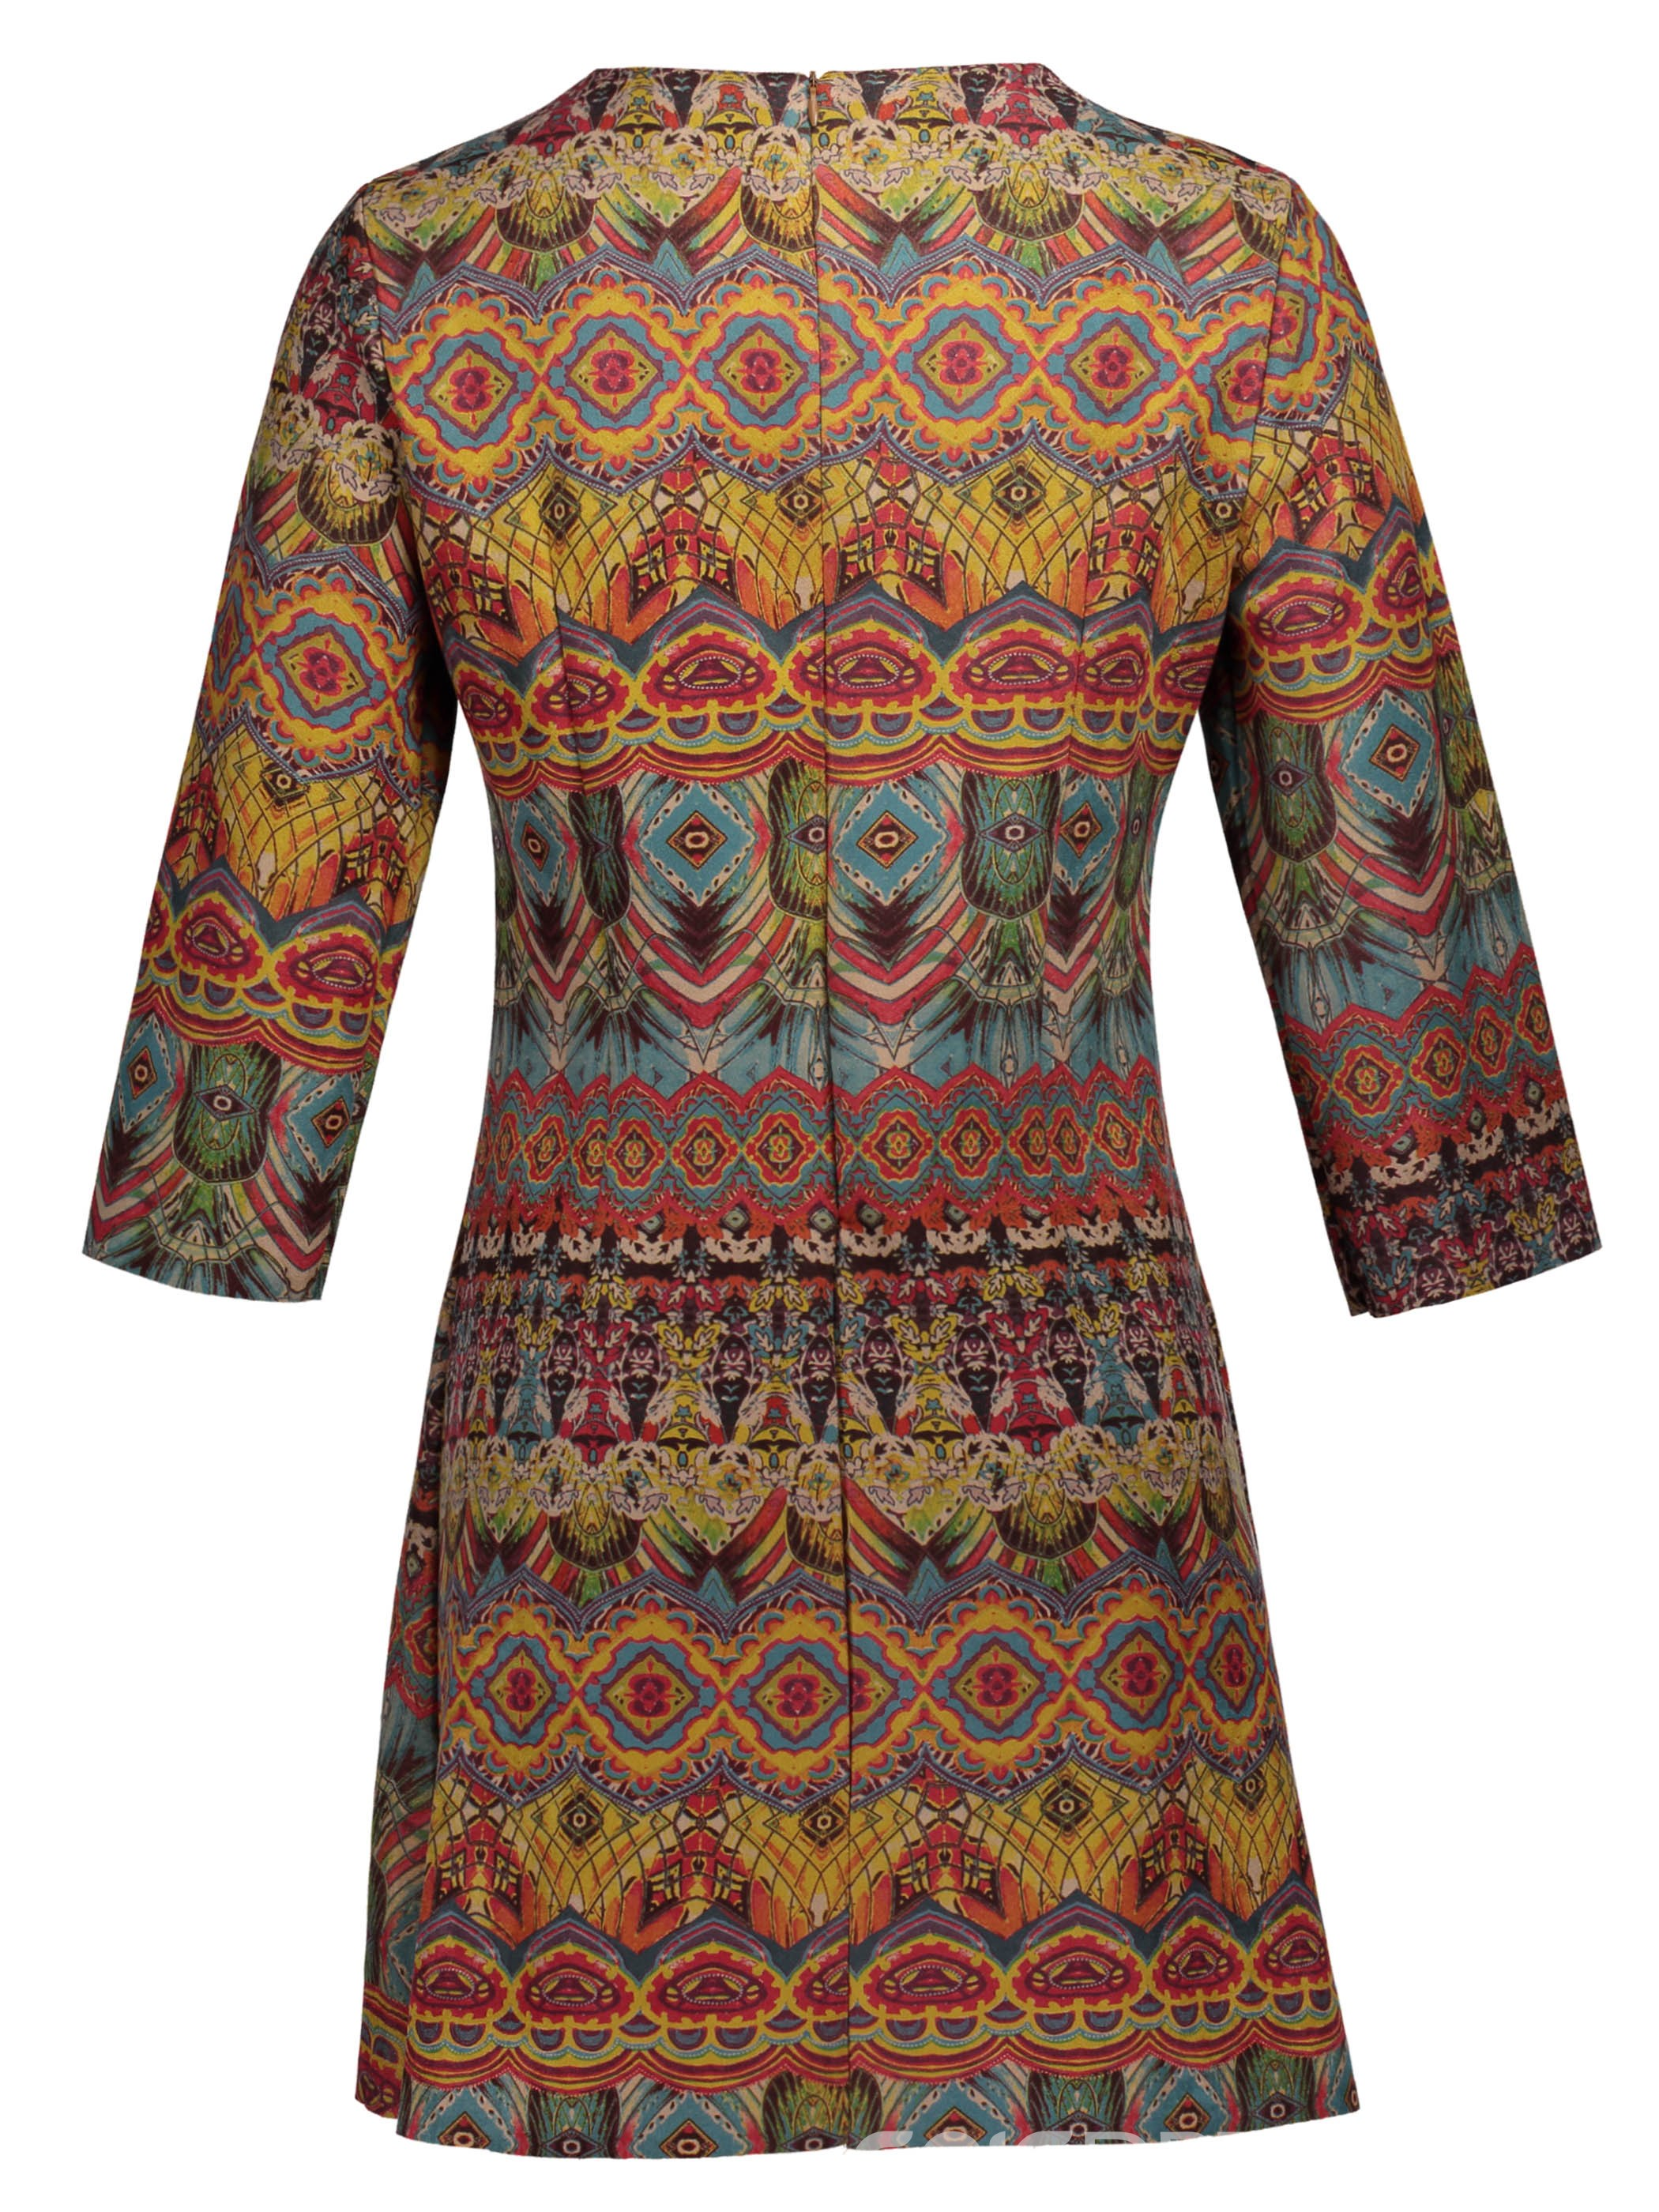 Ericdress Ethnic Lace-Up 3/4 Length Sleeves A-Line Dress